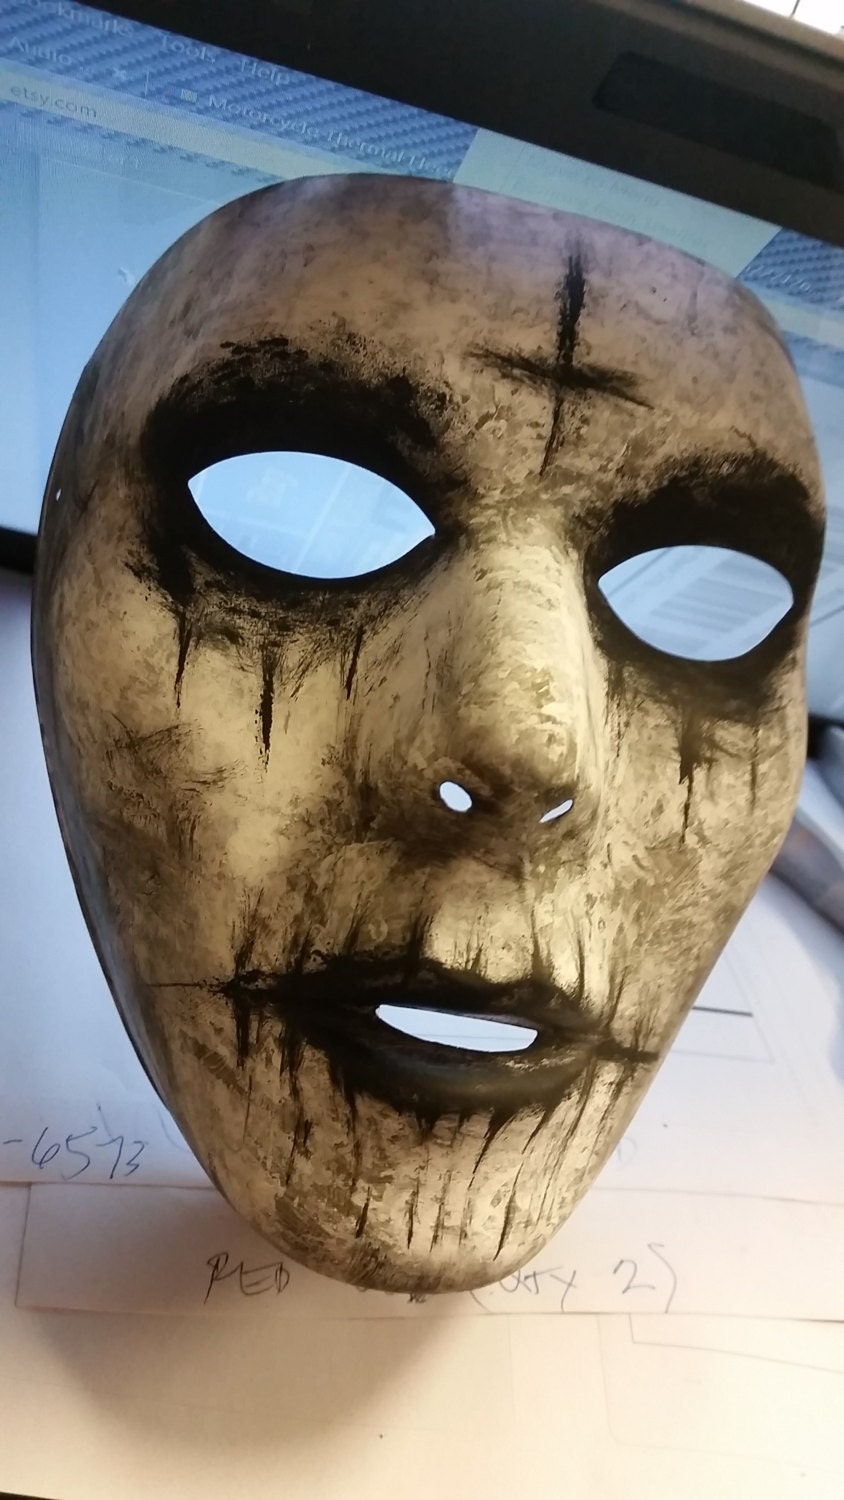 zoom - Purge Anarchy Masks For Halloween